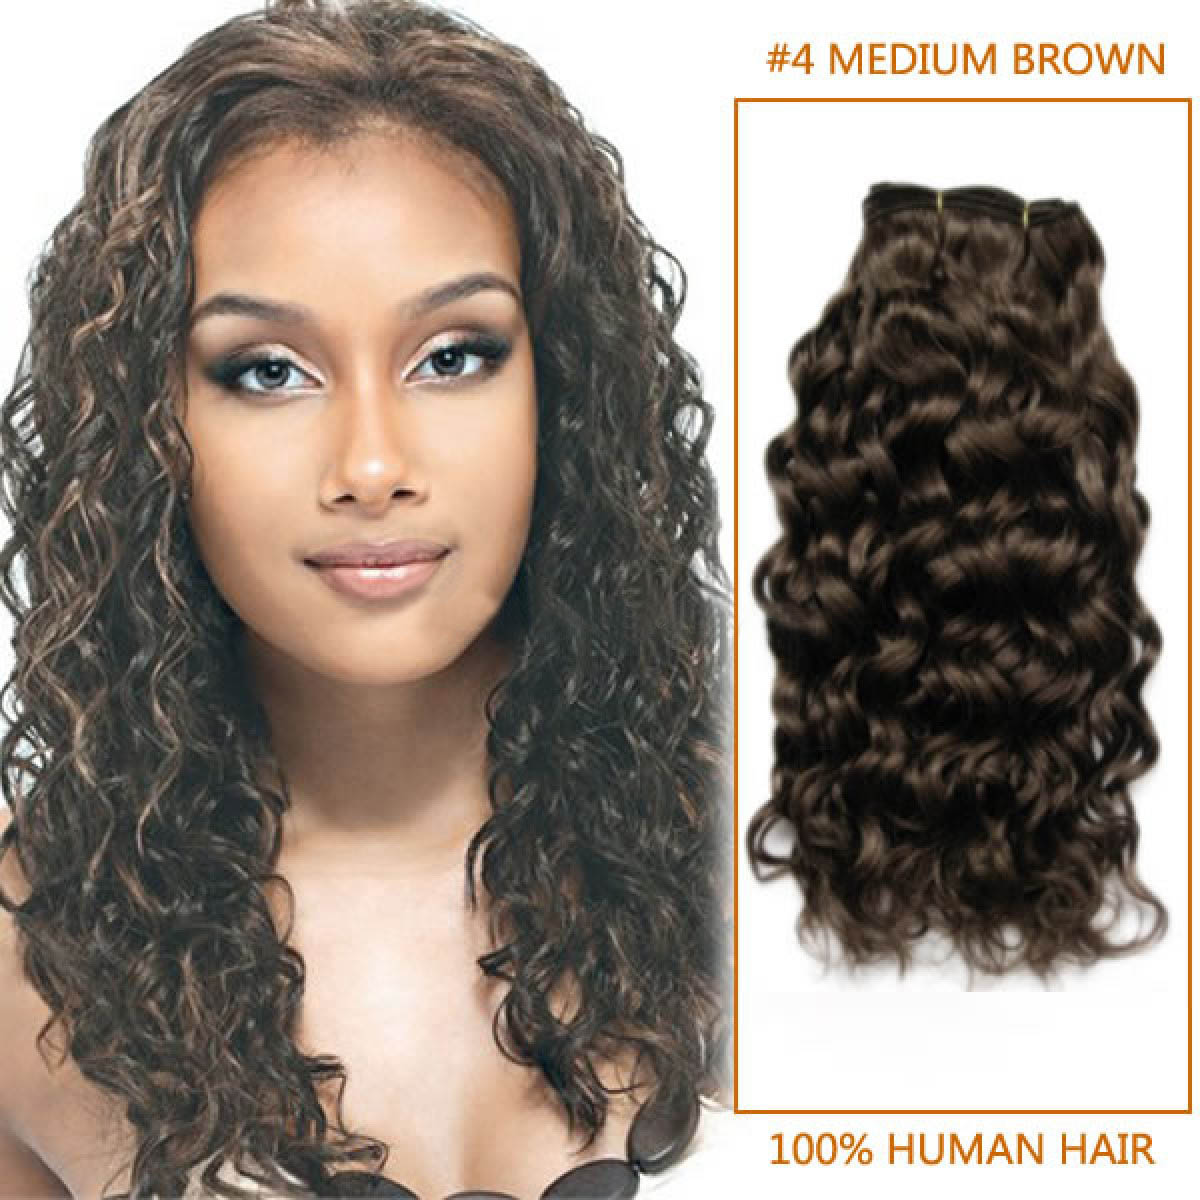 24 Inch 4 Medium Brown Curly Brazilian Virgin Hair Wefts